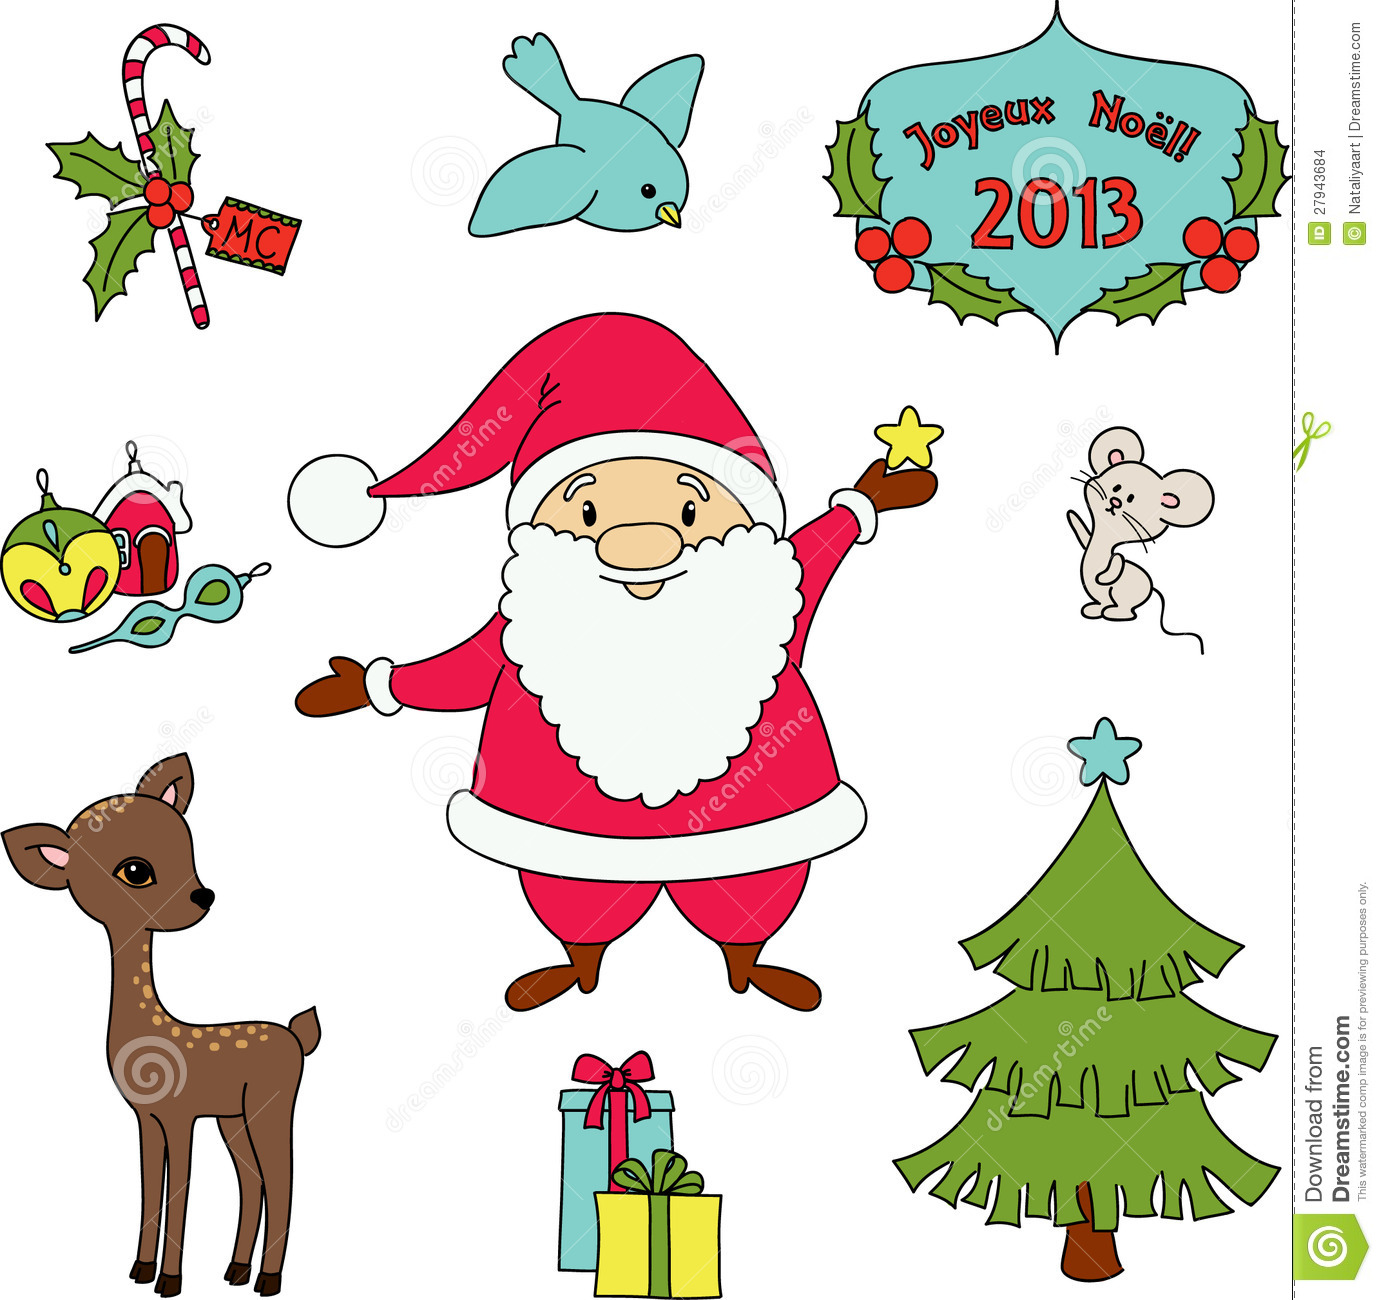 Christmas Clip-art Stock Images - Image: 27943684